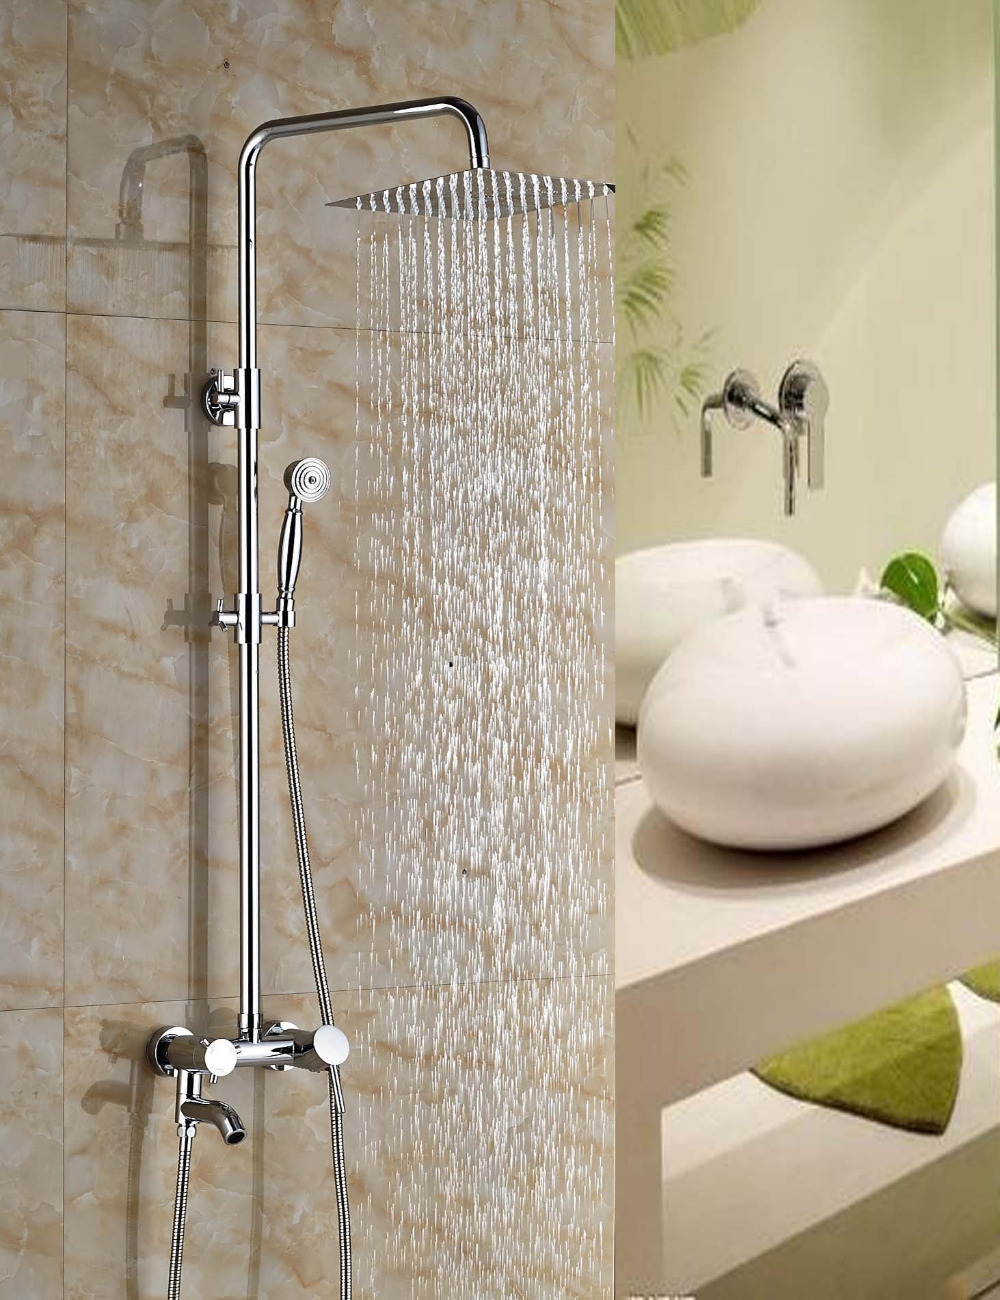 Wholesale And Retail Modern Square Ultrathin Bathroom Rain Shower Head Shower Mixer Tap Swivel Spout Tub Mixer Tap / Hand Shower hot sale wholesale and retail promotion new modern brushed nickel 12 rain shower head ultrathin shower head replacement